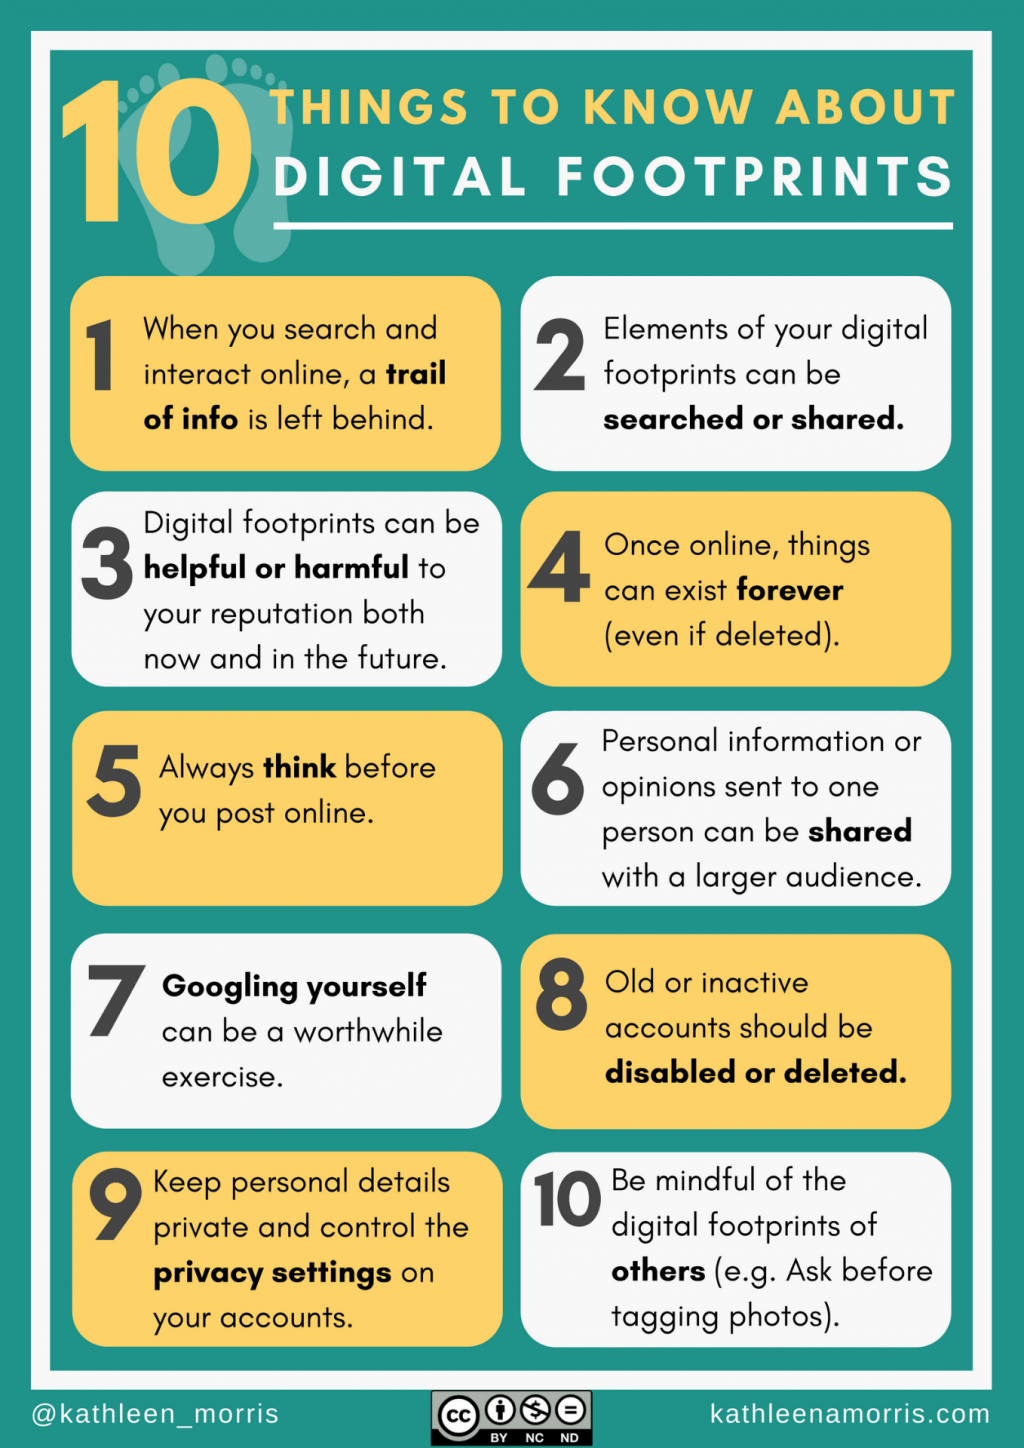 10 things to know about digital footprints